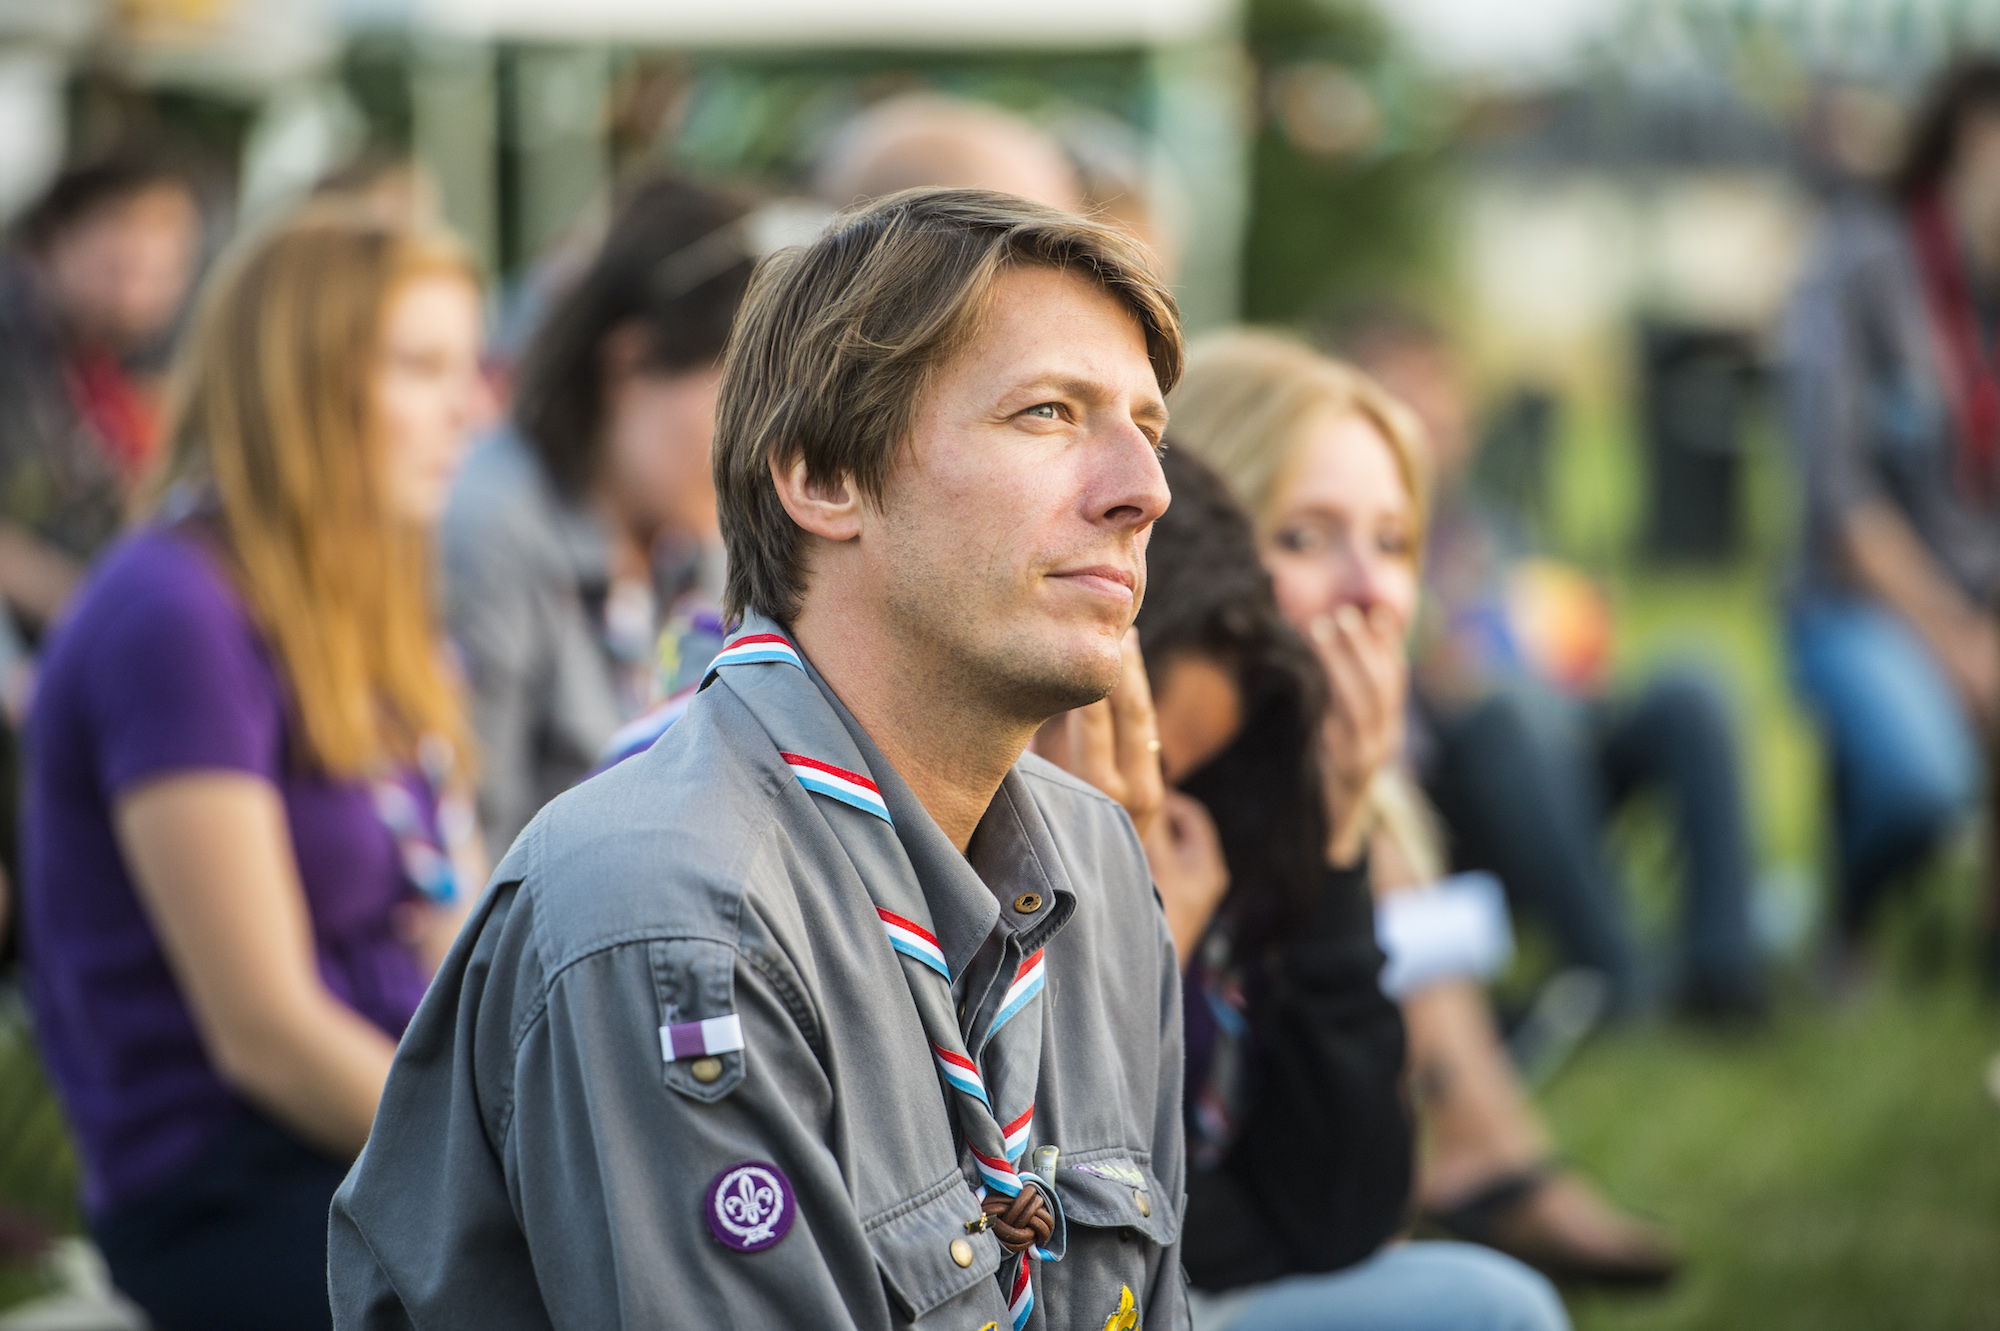 SCOUTS - SCOUTS ARE THE WORLD'S LARGEST NETWORK FOR CHILDREN AND YOUNG PEOPLE BETWEEN 6 AND 26, WHERE YOU CAN SPEND A LIFETIME DEVELOPPING YOUR OWN SKILLS, DISCOVERING AND LEARNING BY TRYING THINGS YOURSELF .